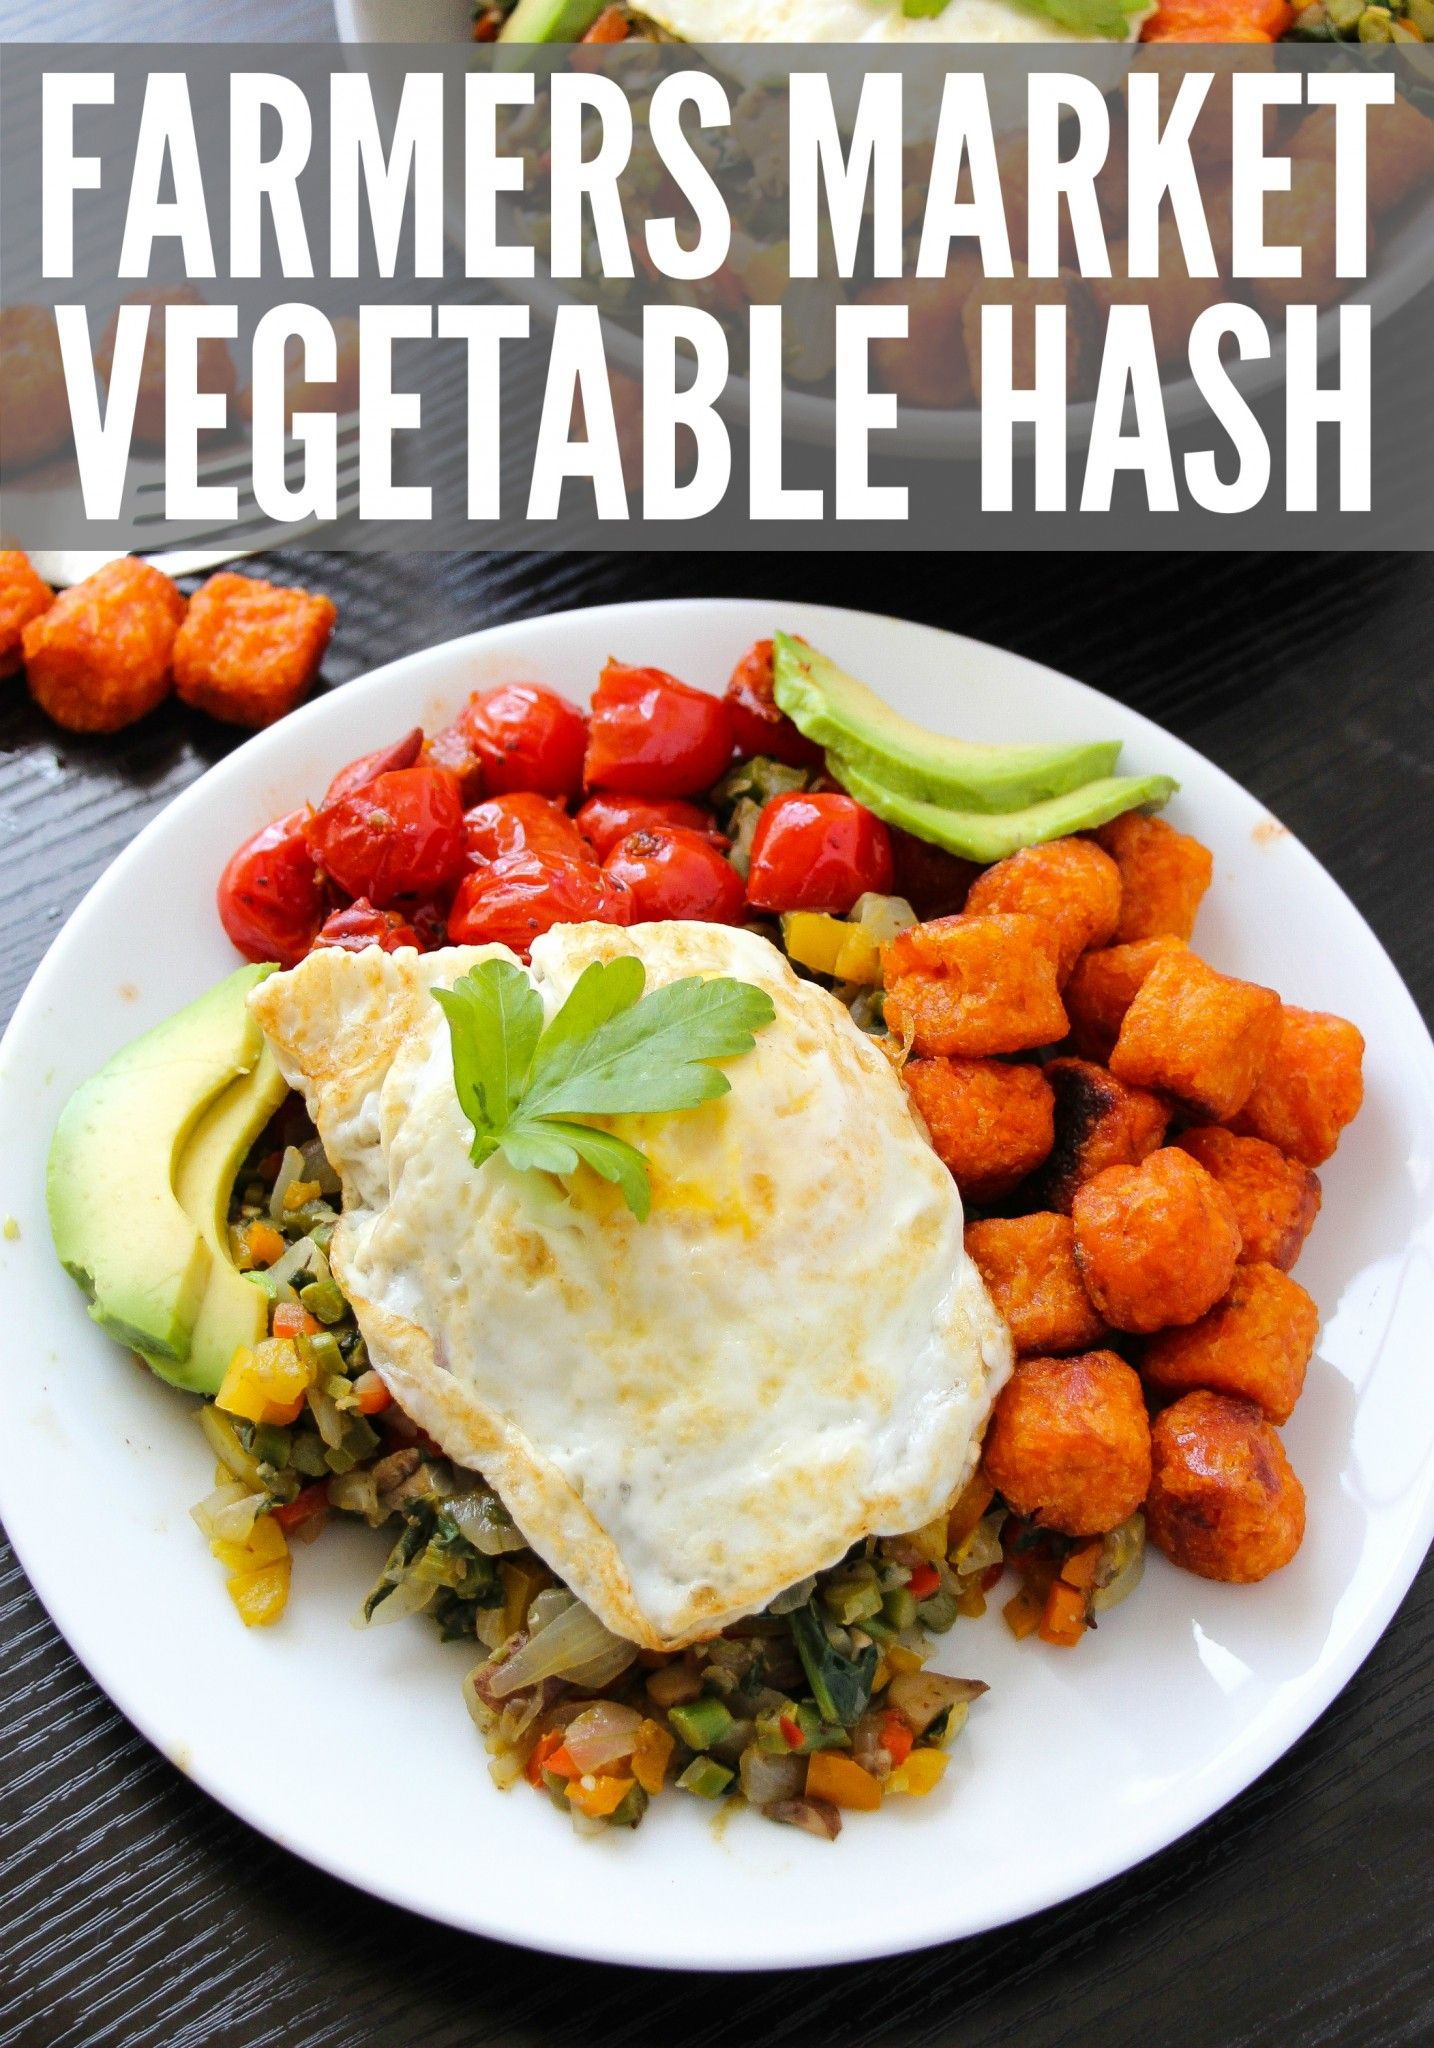 Farmers Market Vegetable Hash | Vegans, The o'jays and Vegetables